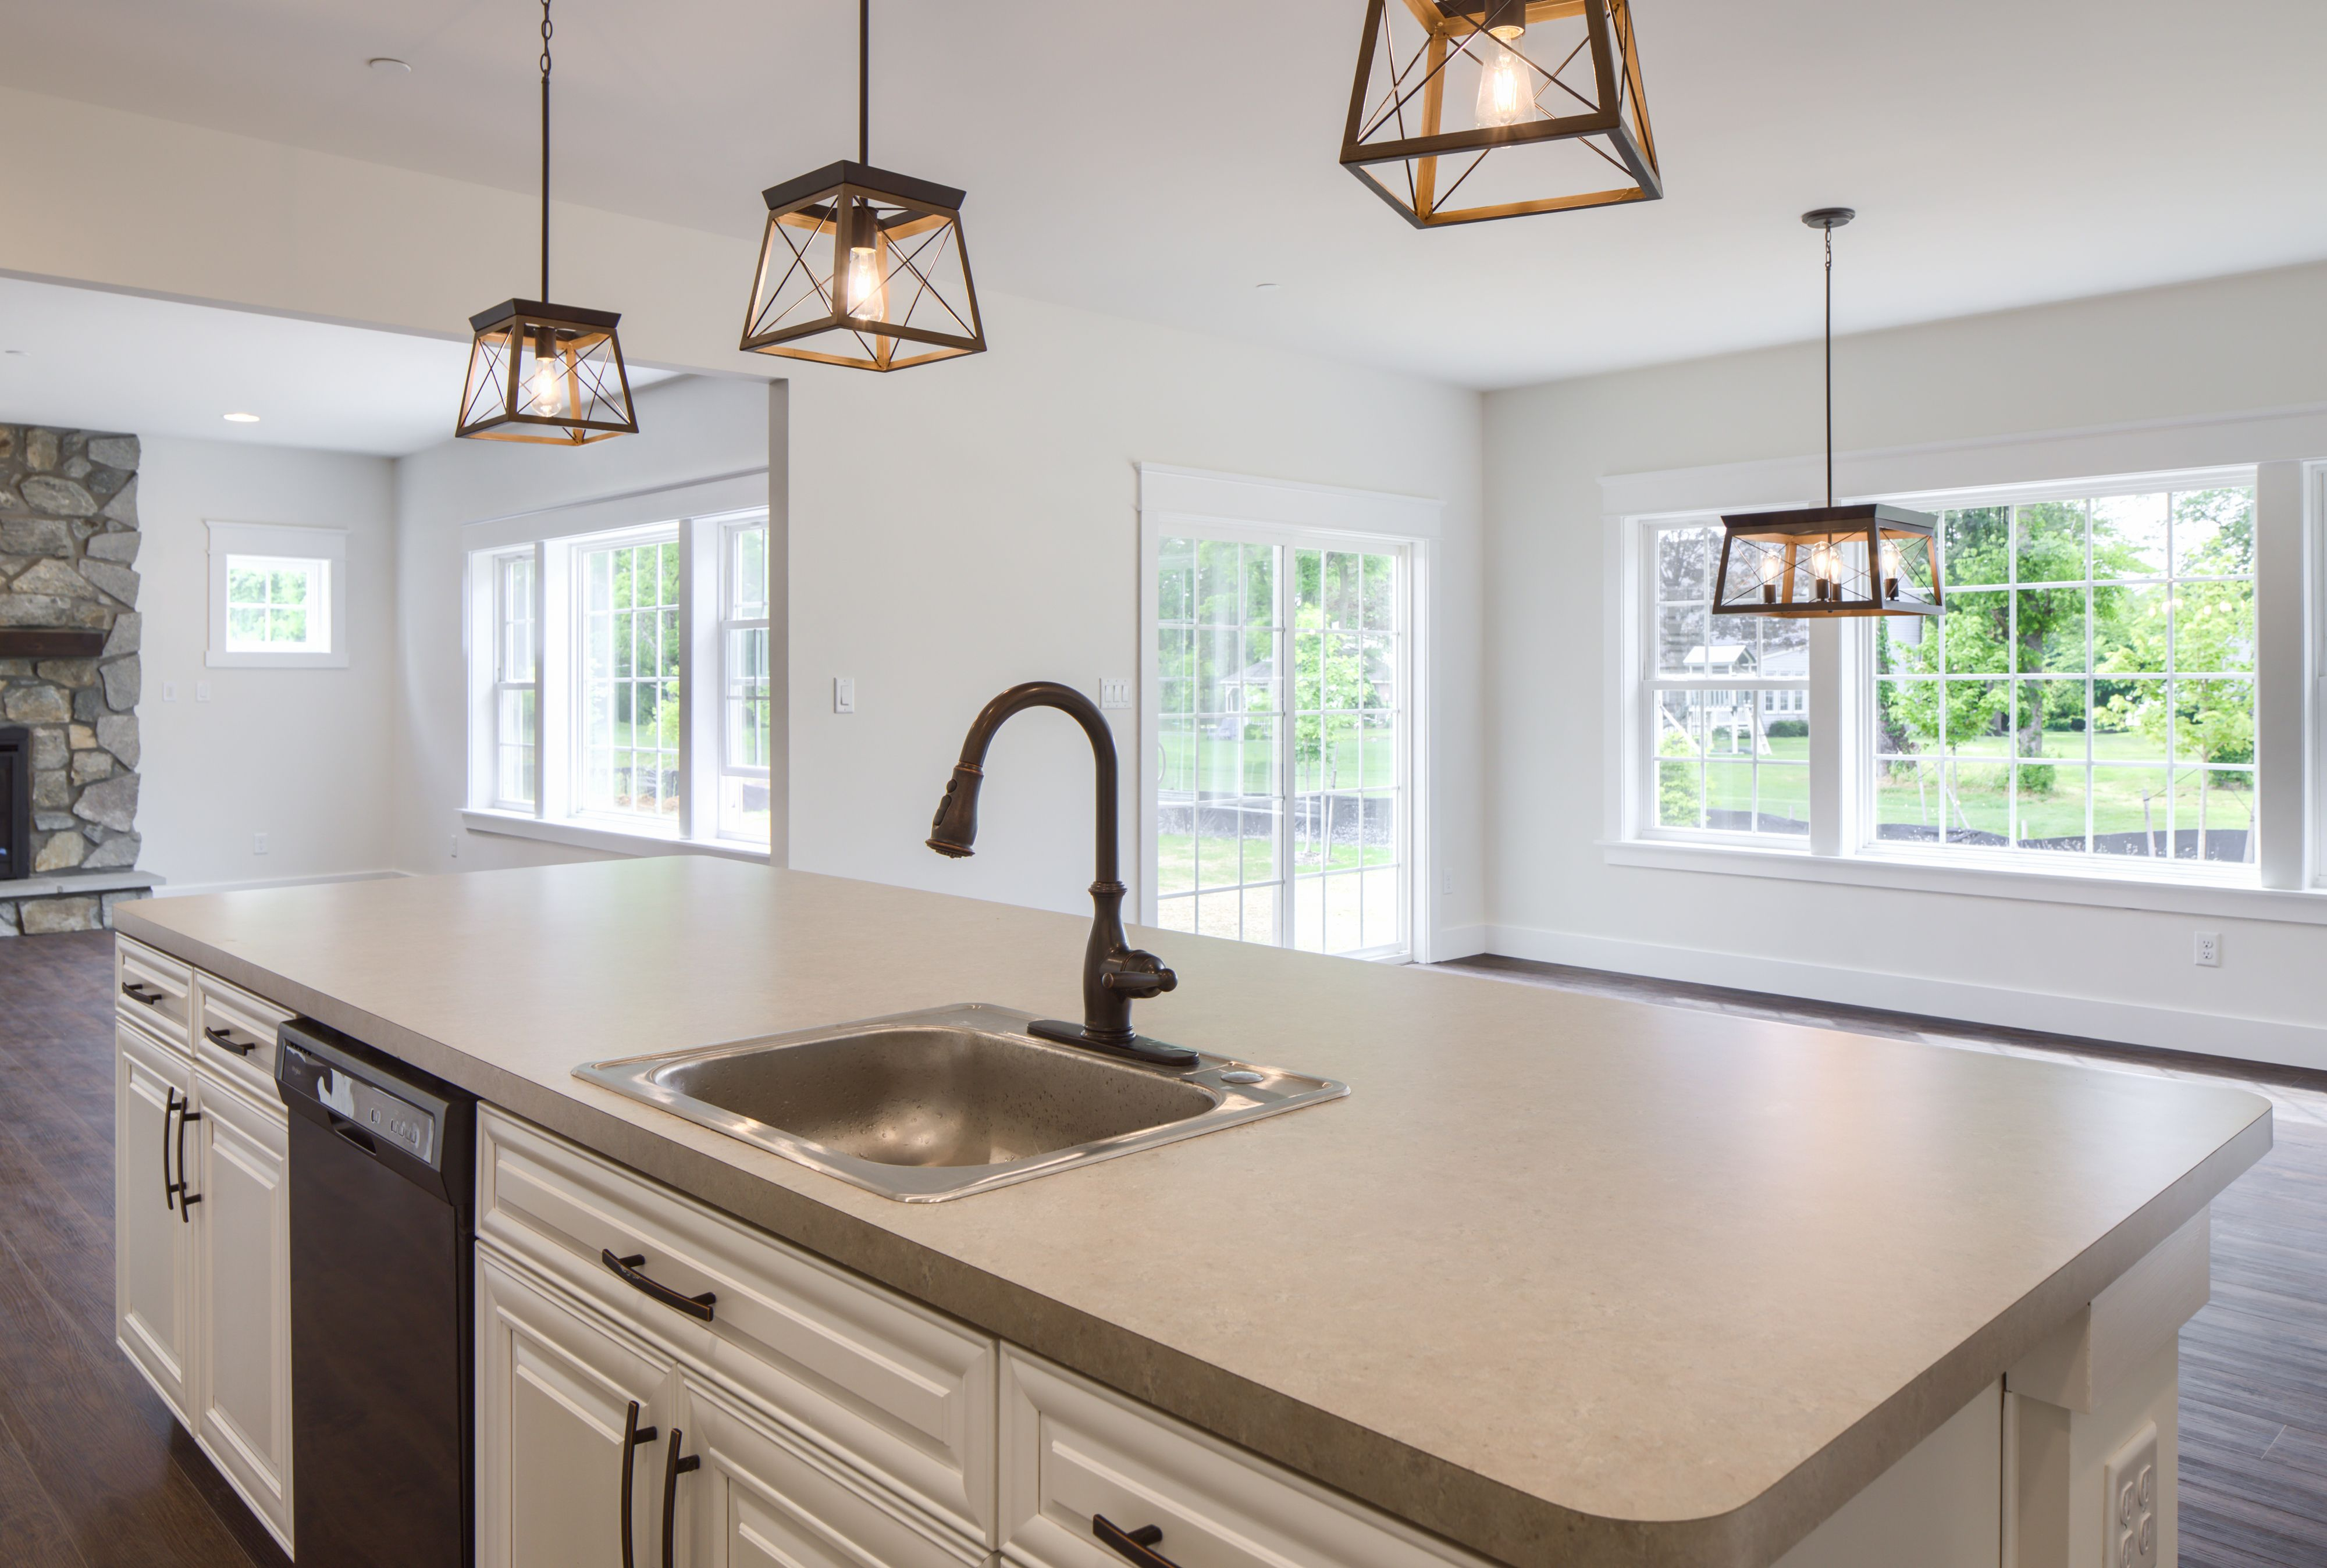 Kitchen featured in the Ethan Heritage By Keystone Custom Homes in Baltimore, MD